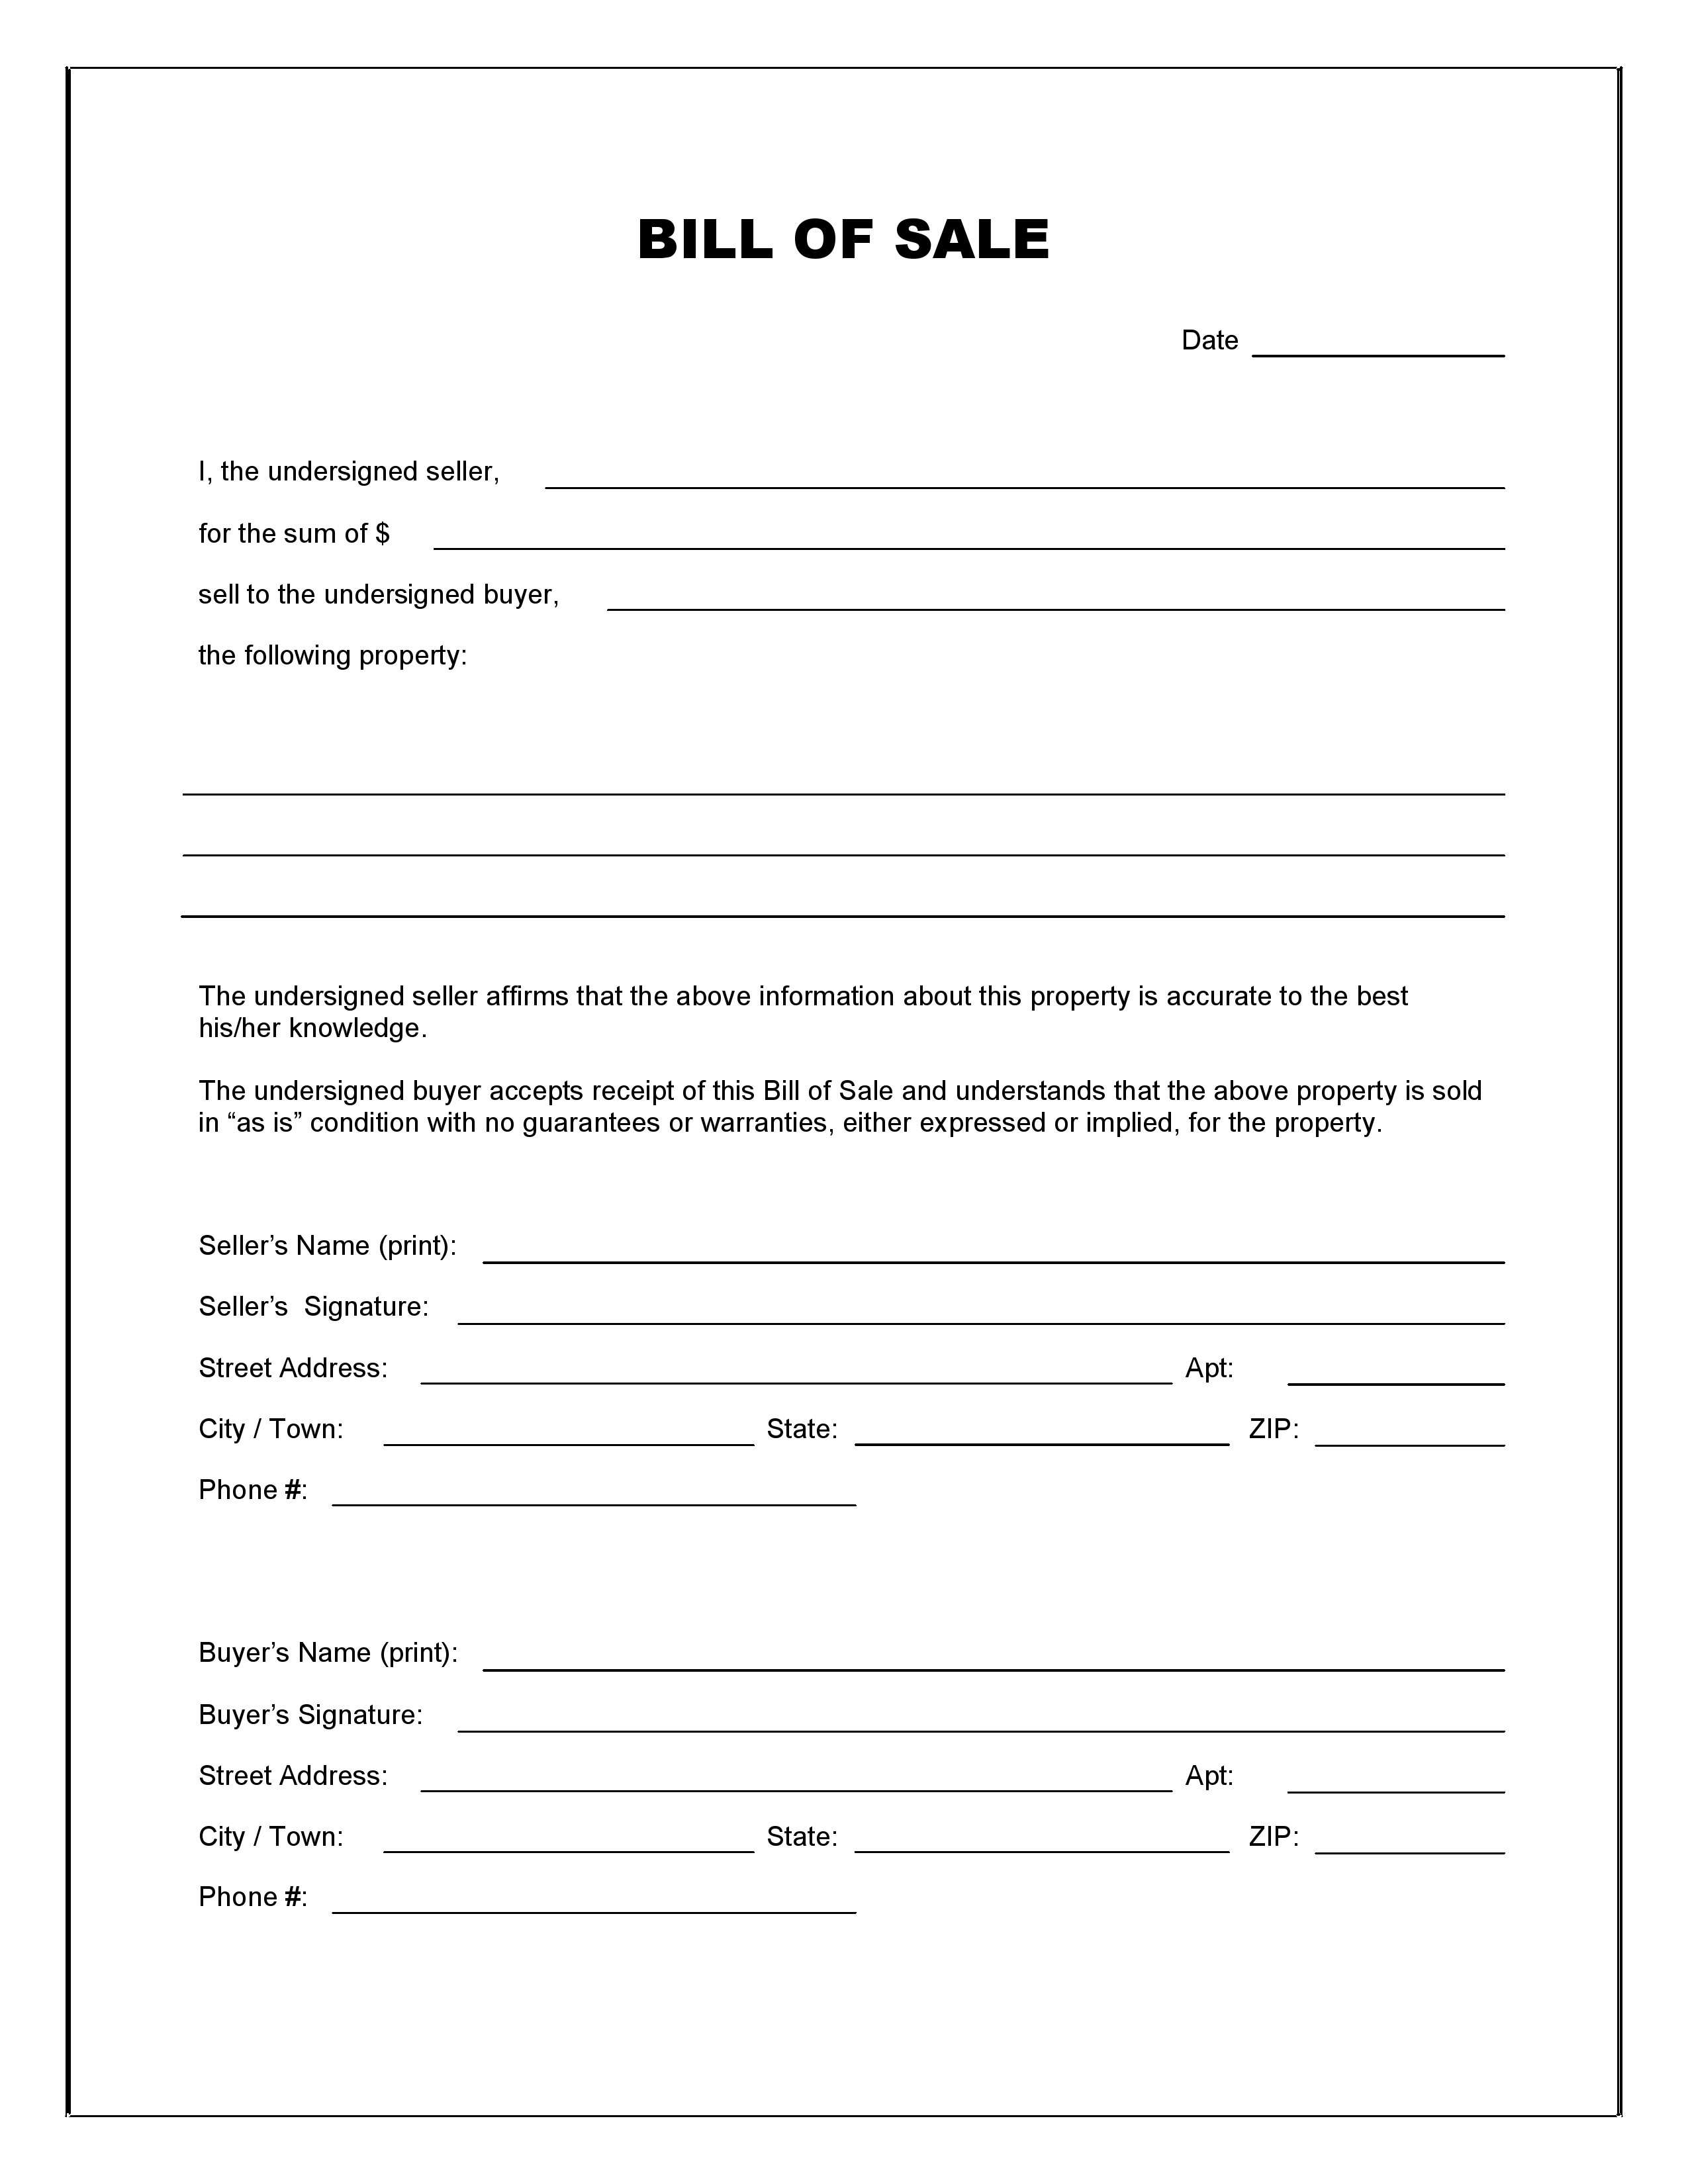 Free Blank Bill Of Sale Form Pdf Word Do It Yourself Forms Bill of sale template utah